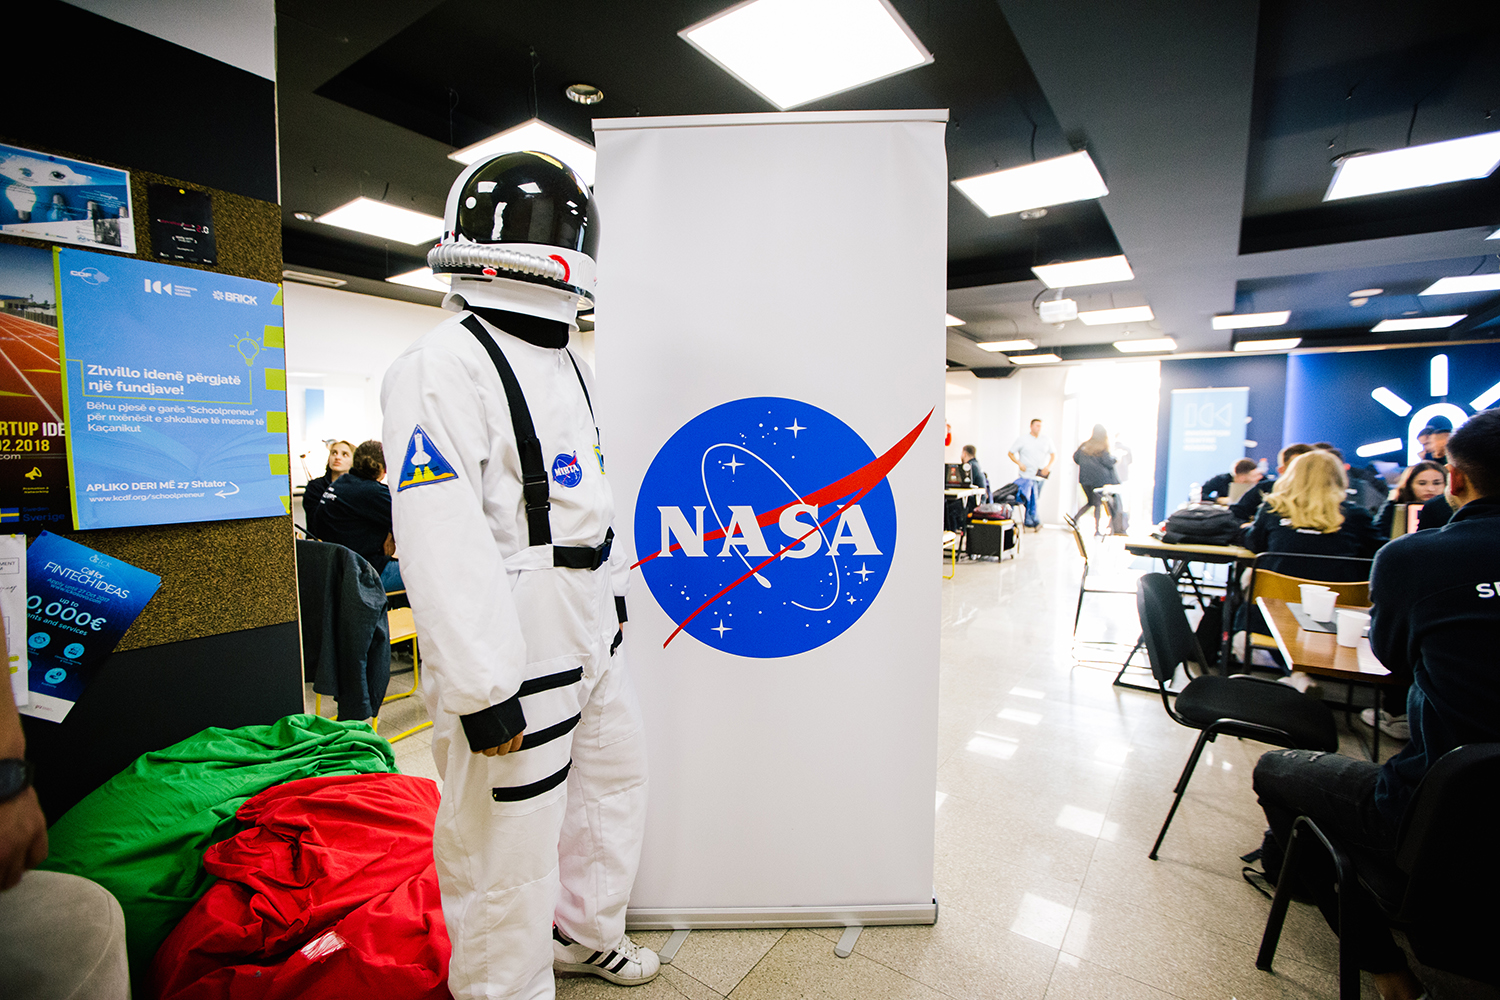 NASA SpaceApps Challenge: Commencing Count-down, Engines On